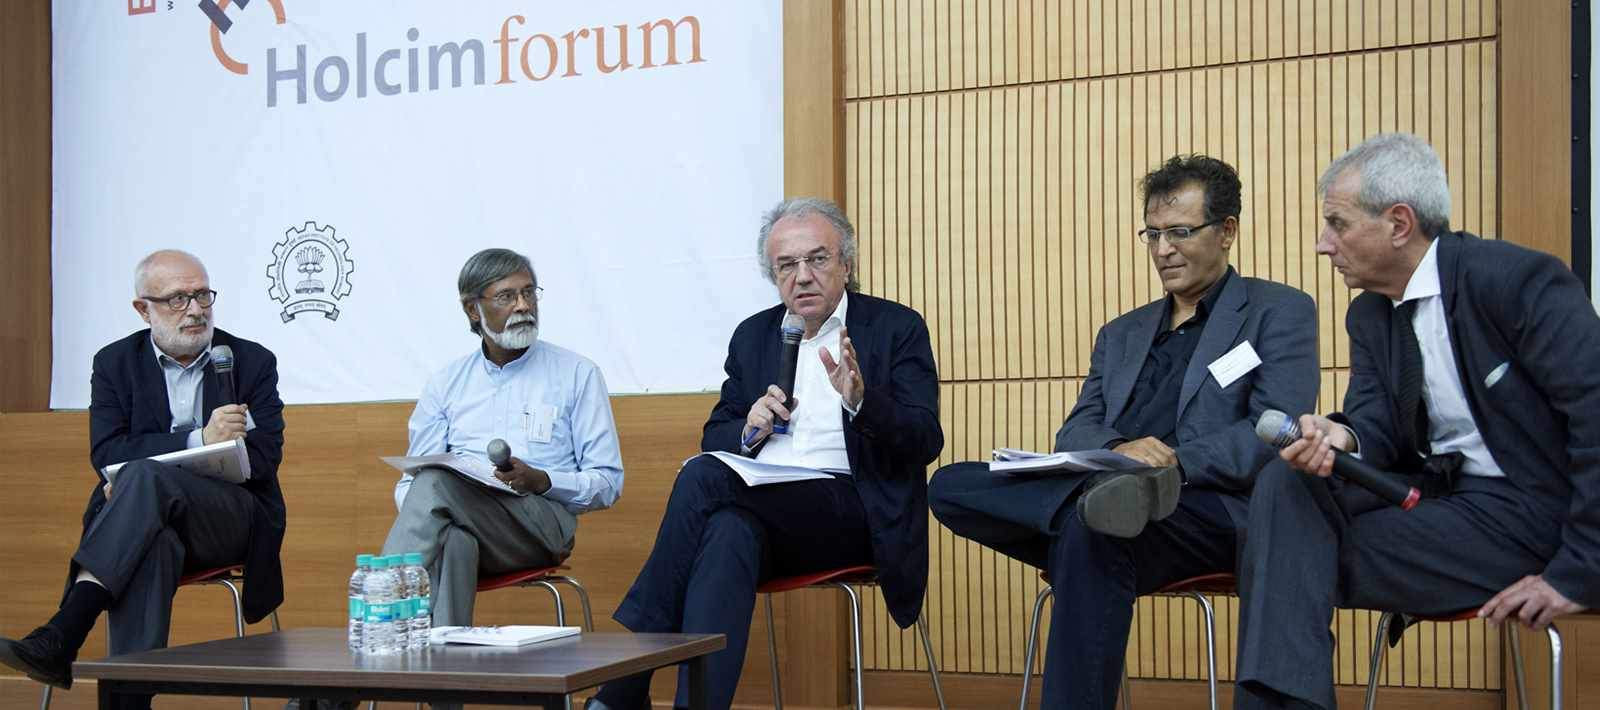 4th Forum in Mumbai, India 2013: Concluding debate discussing workshop findings (l-r): Rolf …